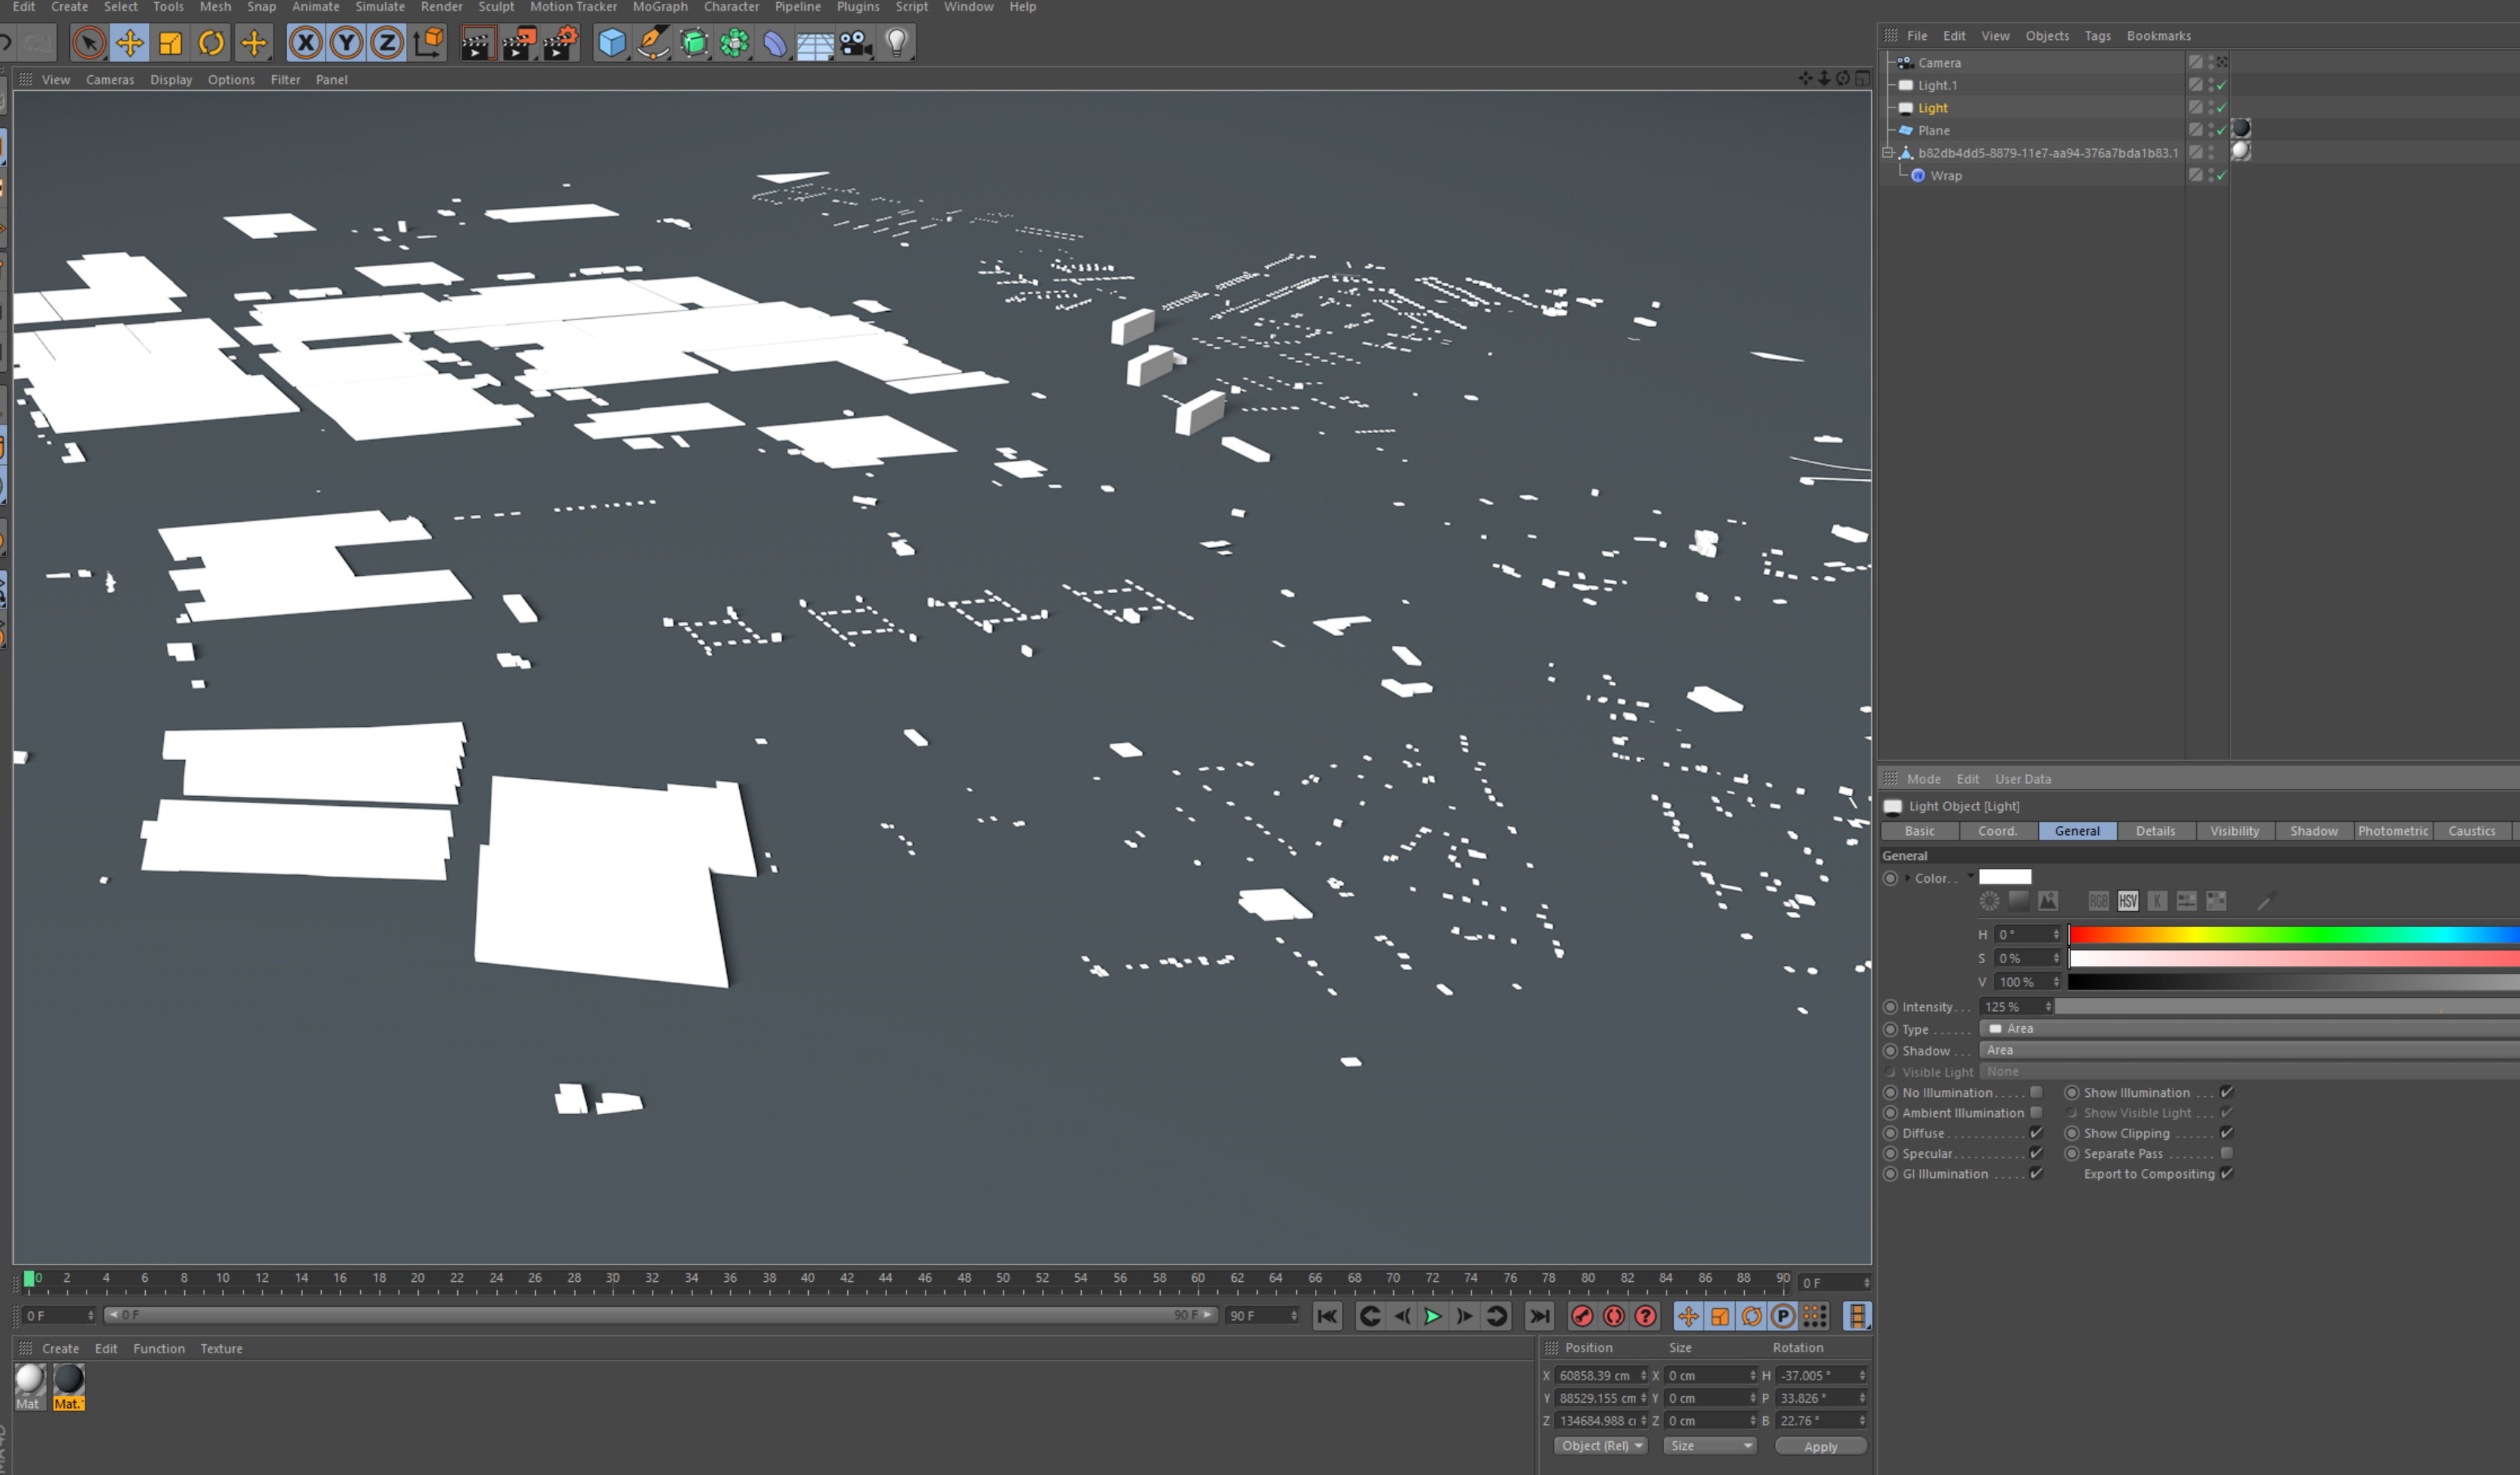 Issues with extruding land, vegetation and water · Issue #40